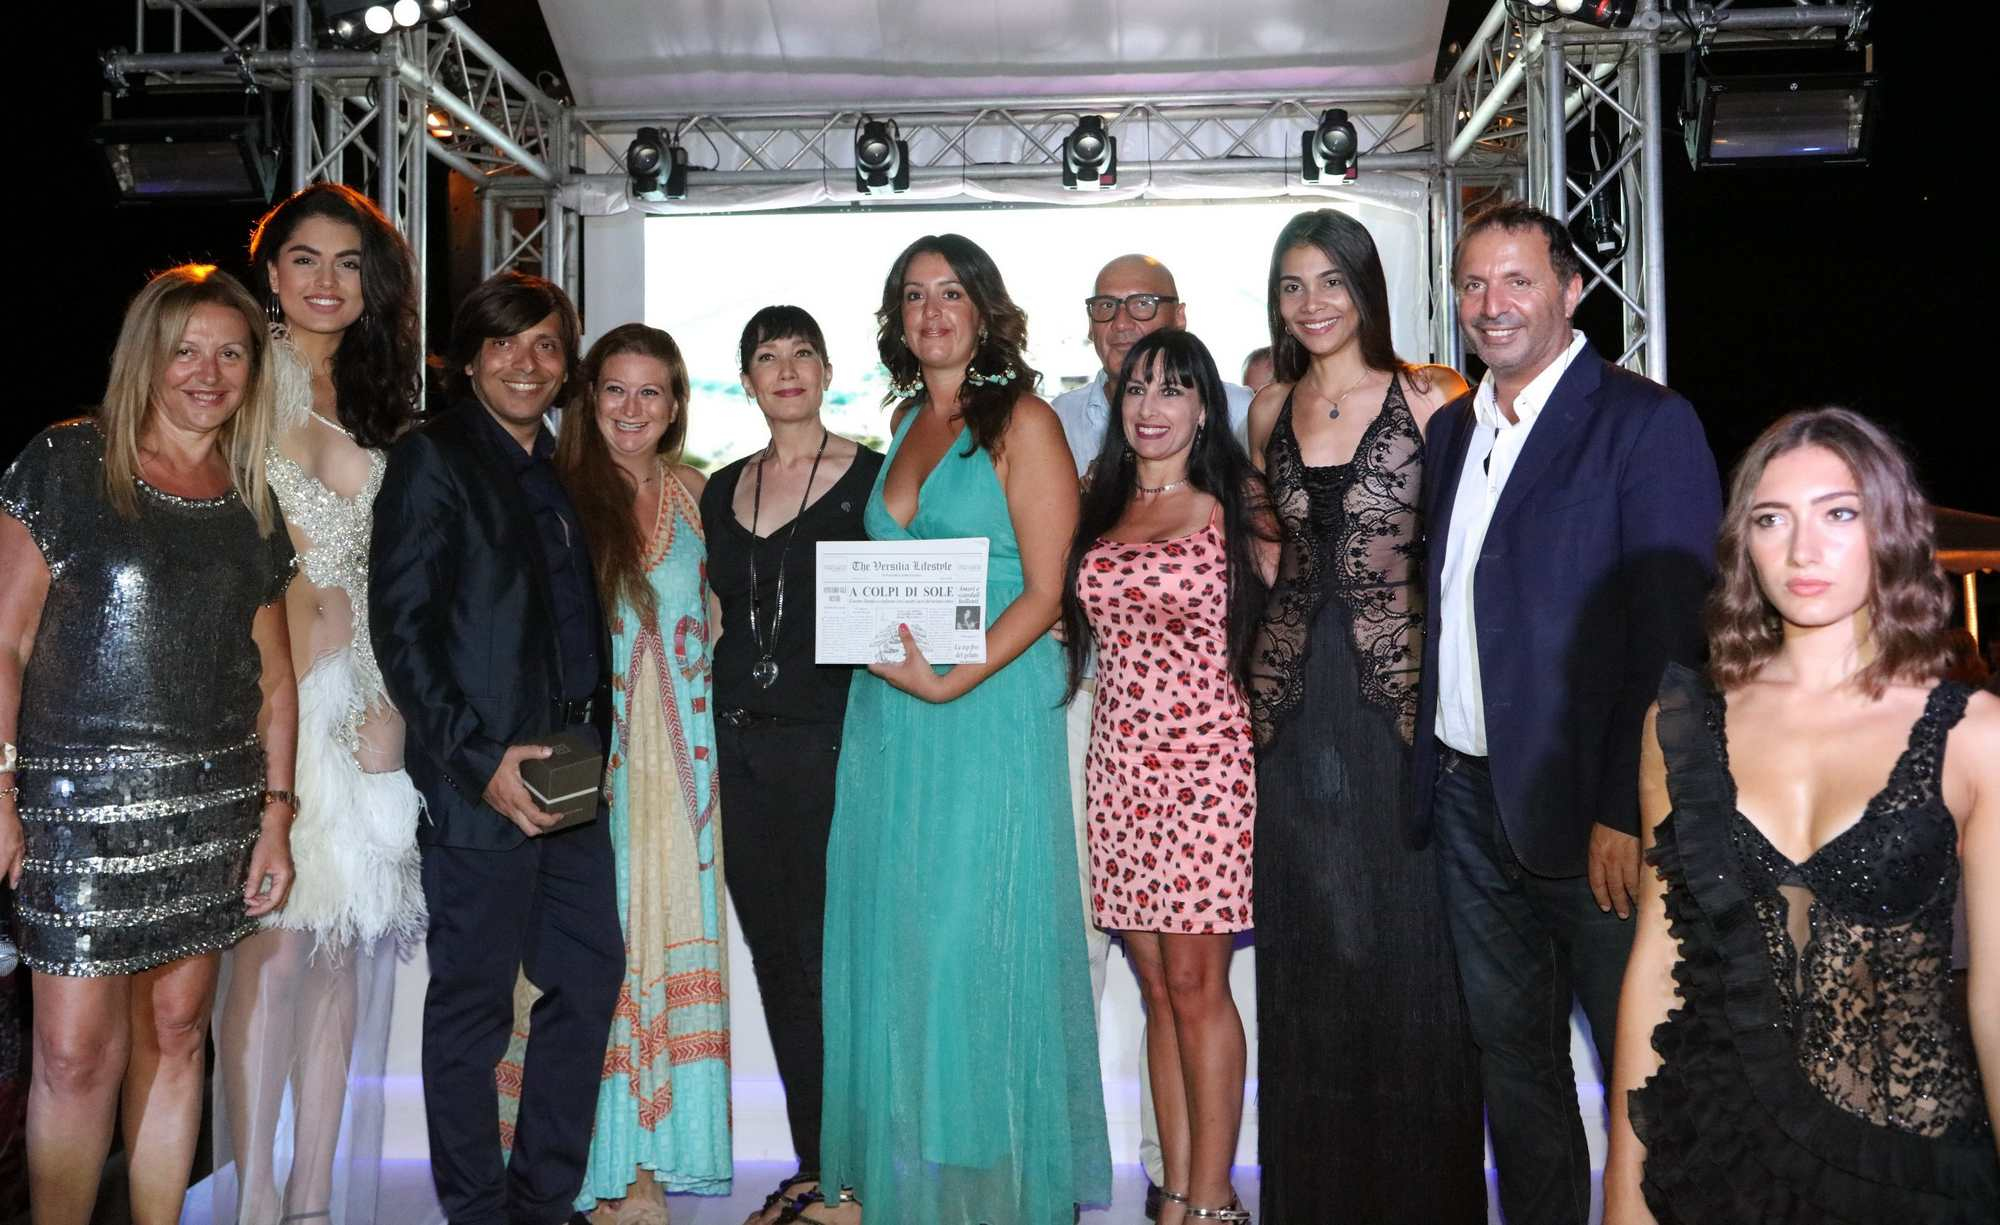 The Versilia Lifestyle, presentata all'Ostras la seconda edizione della nuova free press del territorio